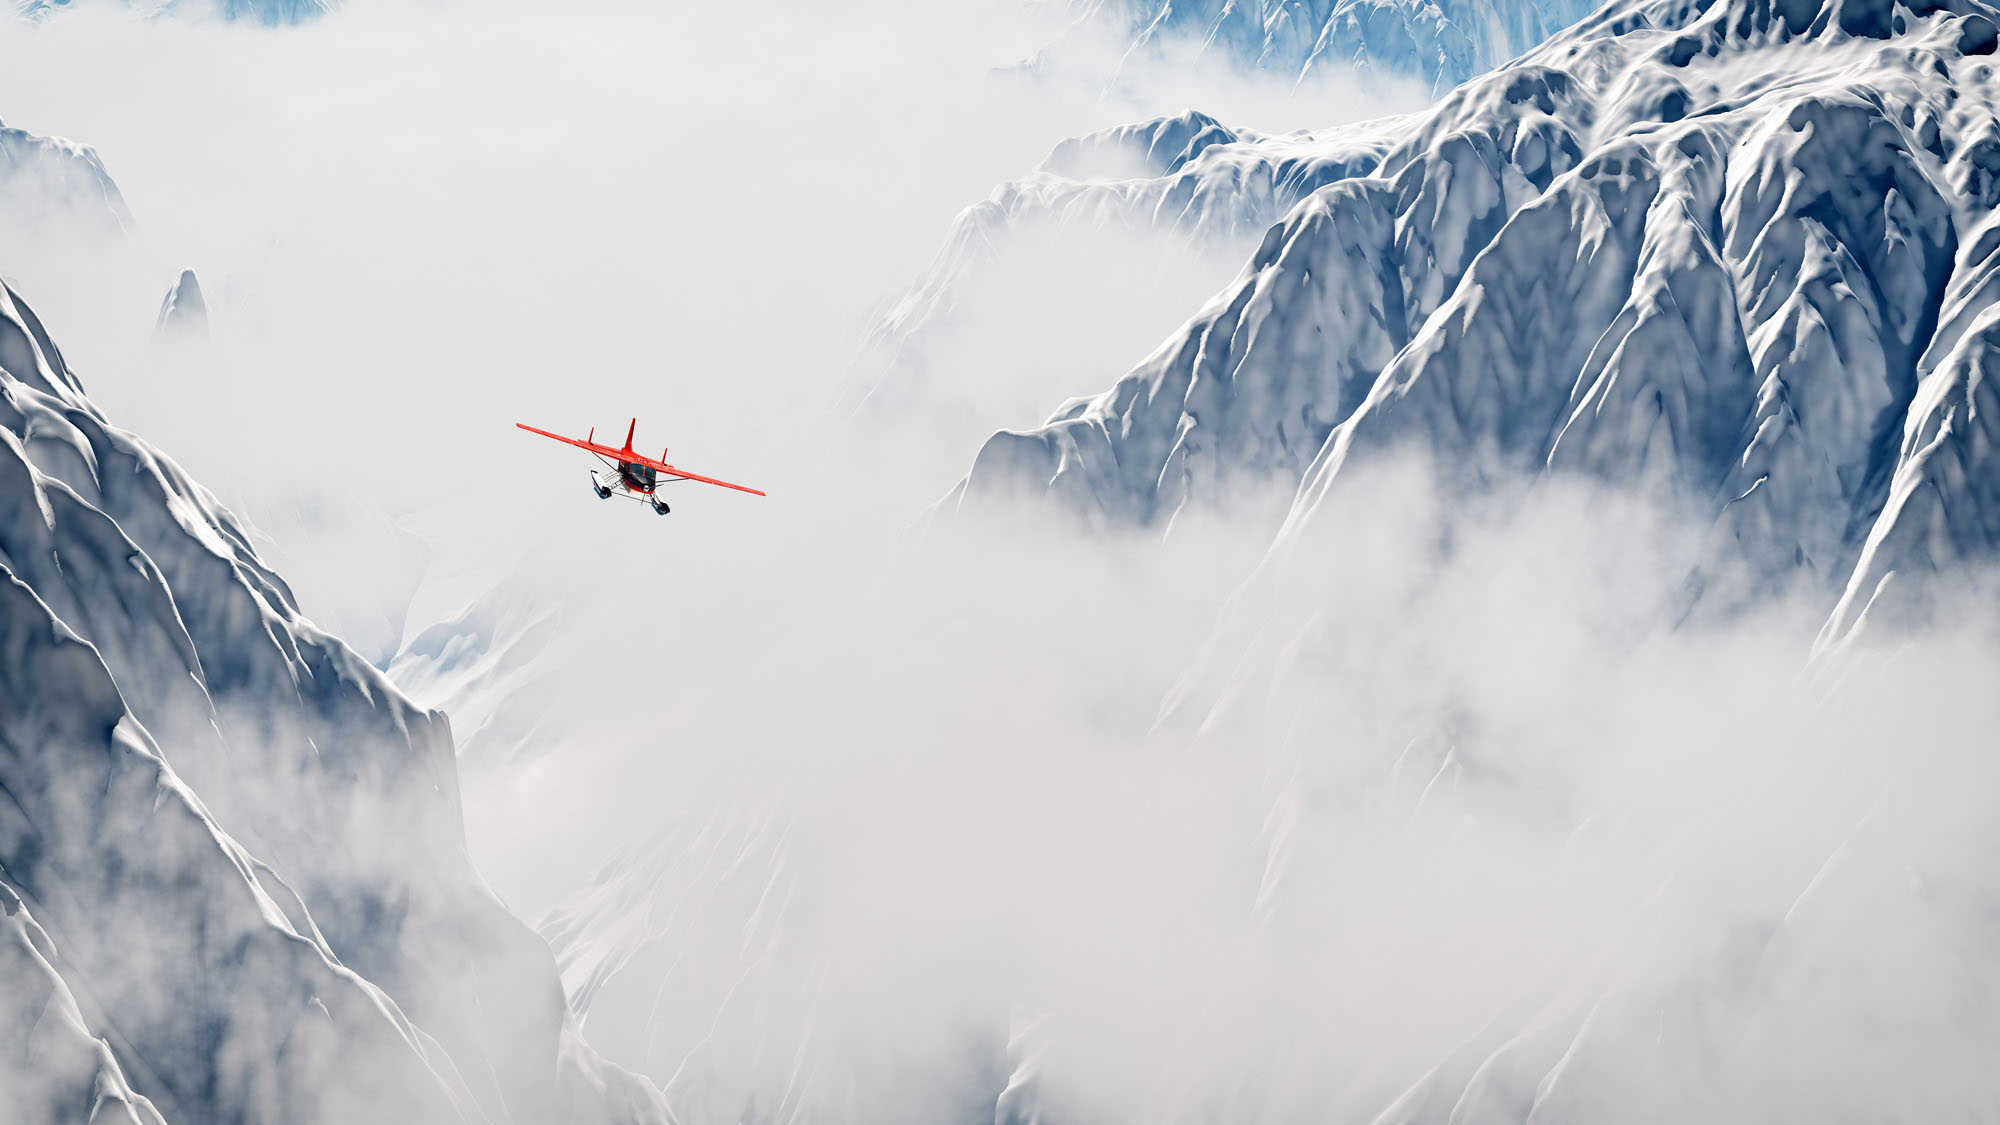 RedPlane-Snow-Mountains_w2000